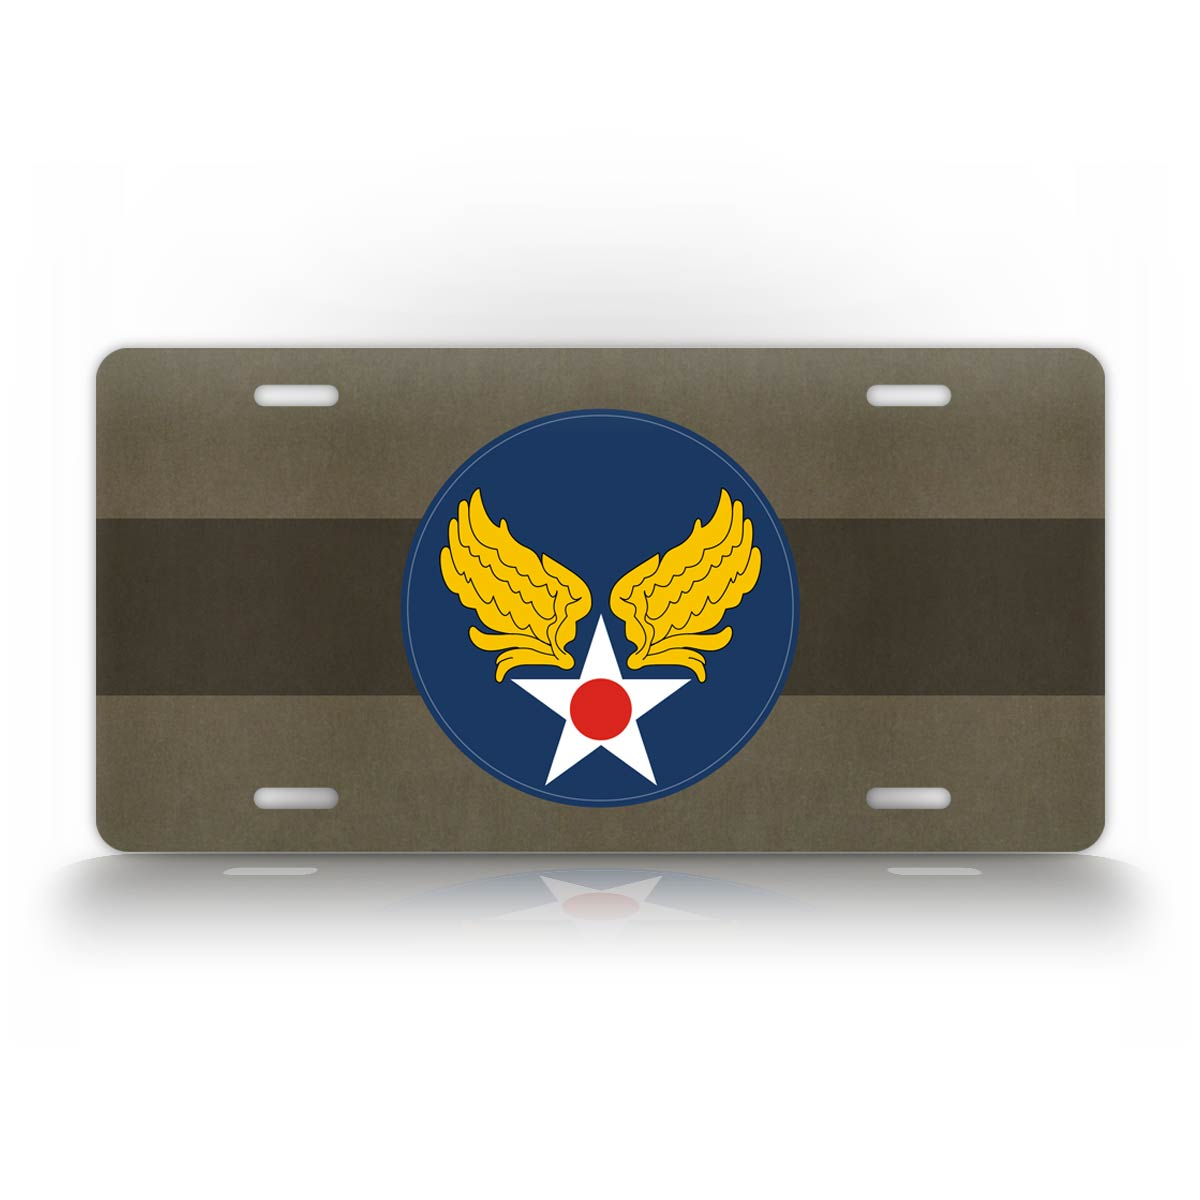 US Air Force Patch WWII Army Air Corps Patch License Plate